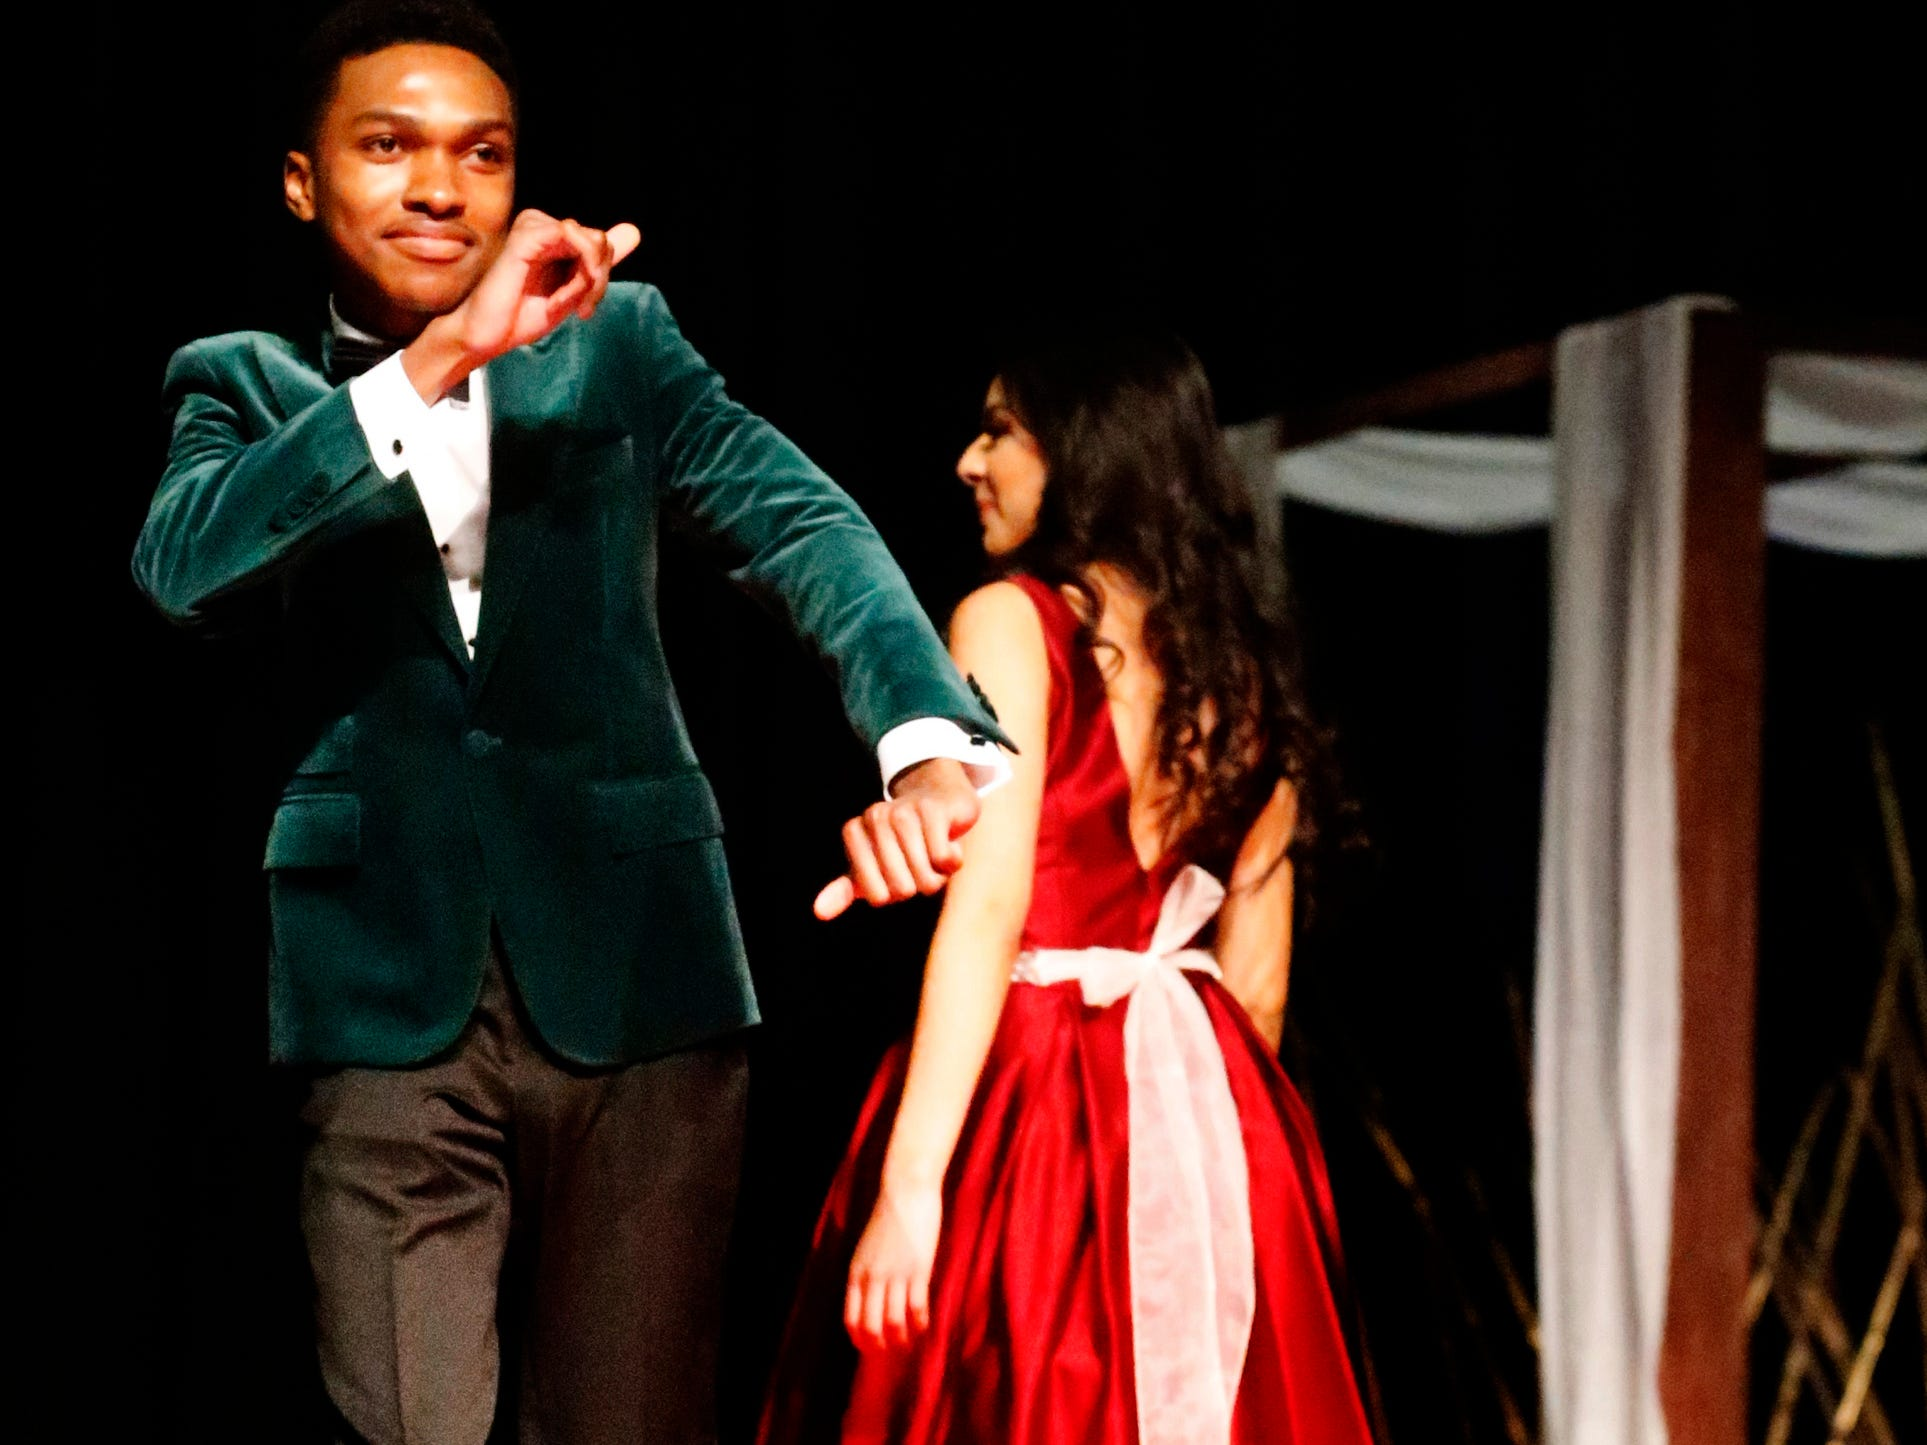 Reggie Stuart dances down to the end of the runway  as Yadira Nieto shows off the back of her dress during the Siegel Prom Fashion show on Thursday, Feb. 14, 2019.